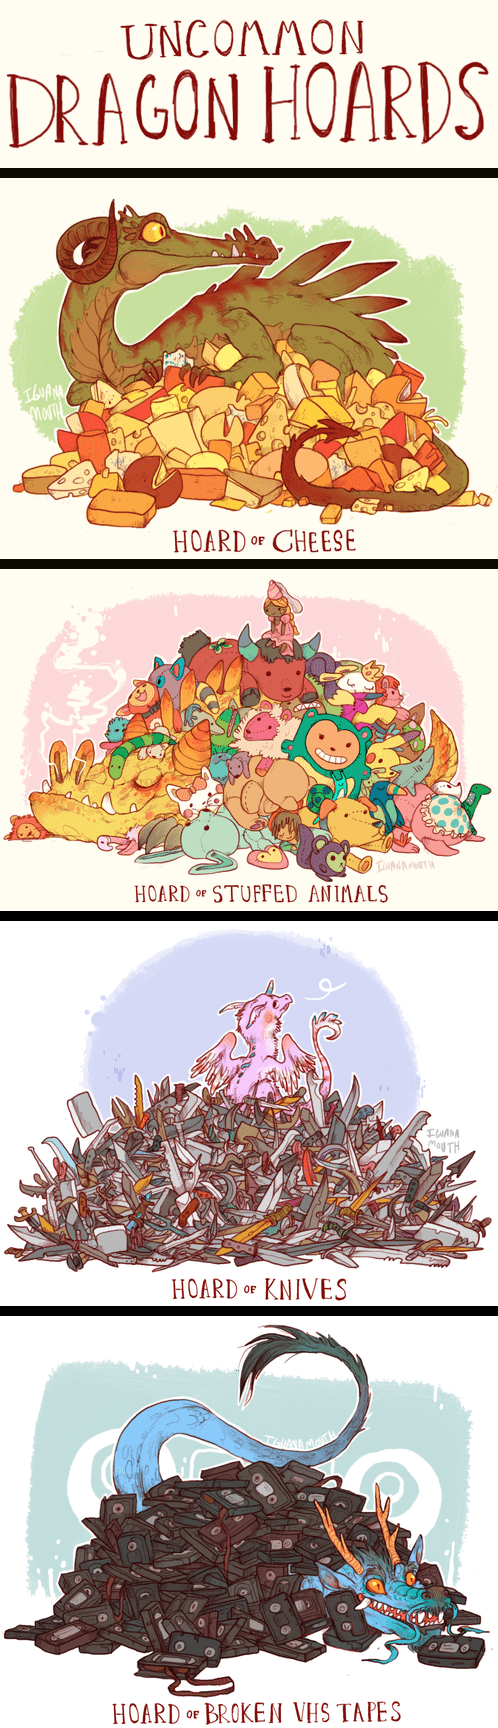 Fan Art cute dragons - 8105340928